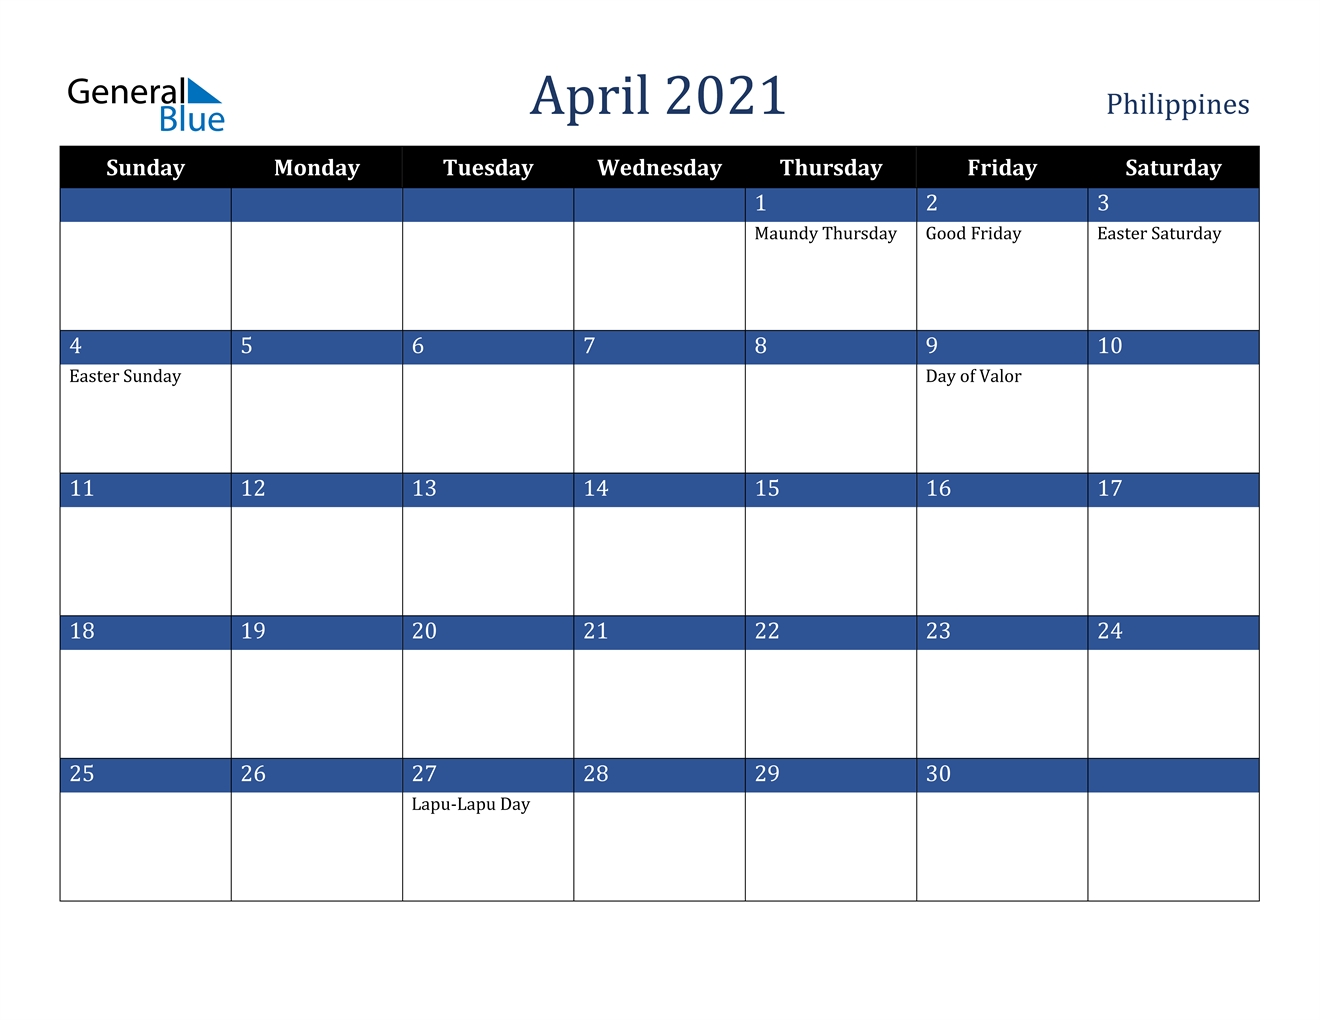 April 2021 Calendar - Philippines for Philippine Calendar 2021 With Holidays Image